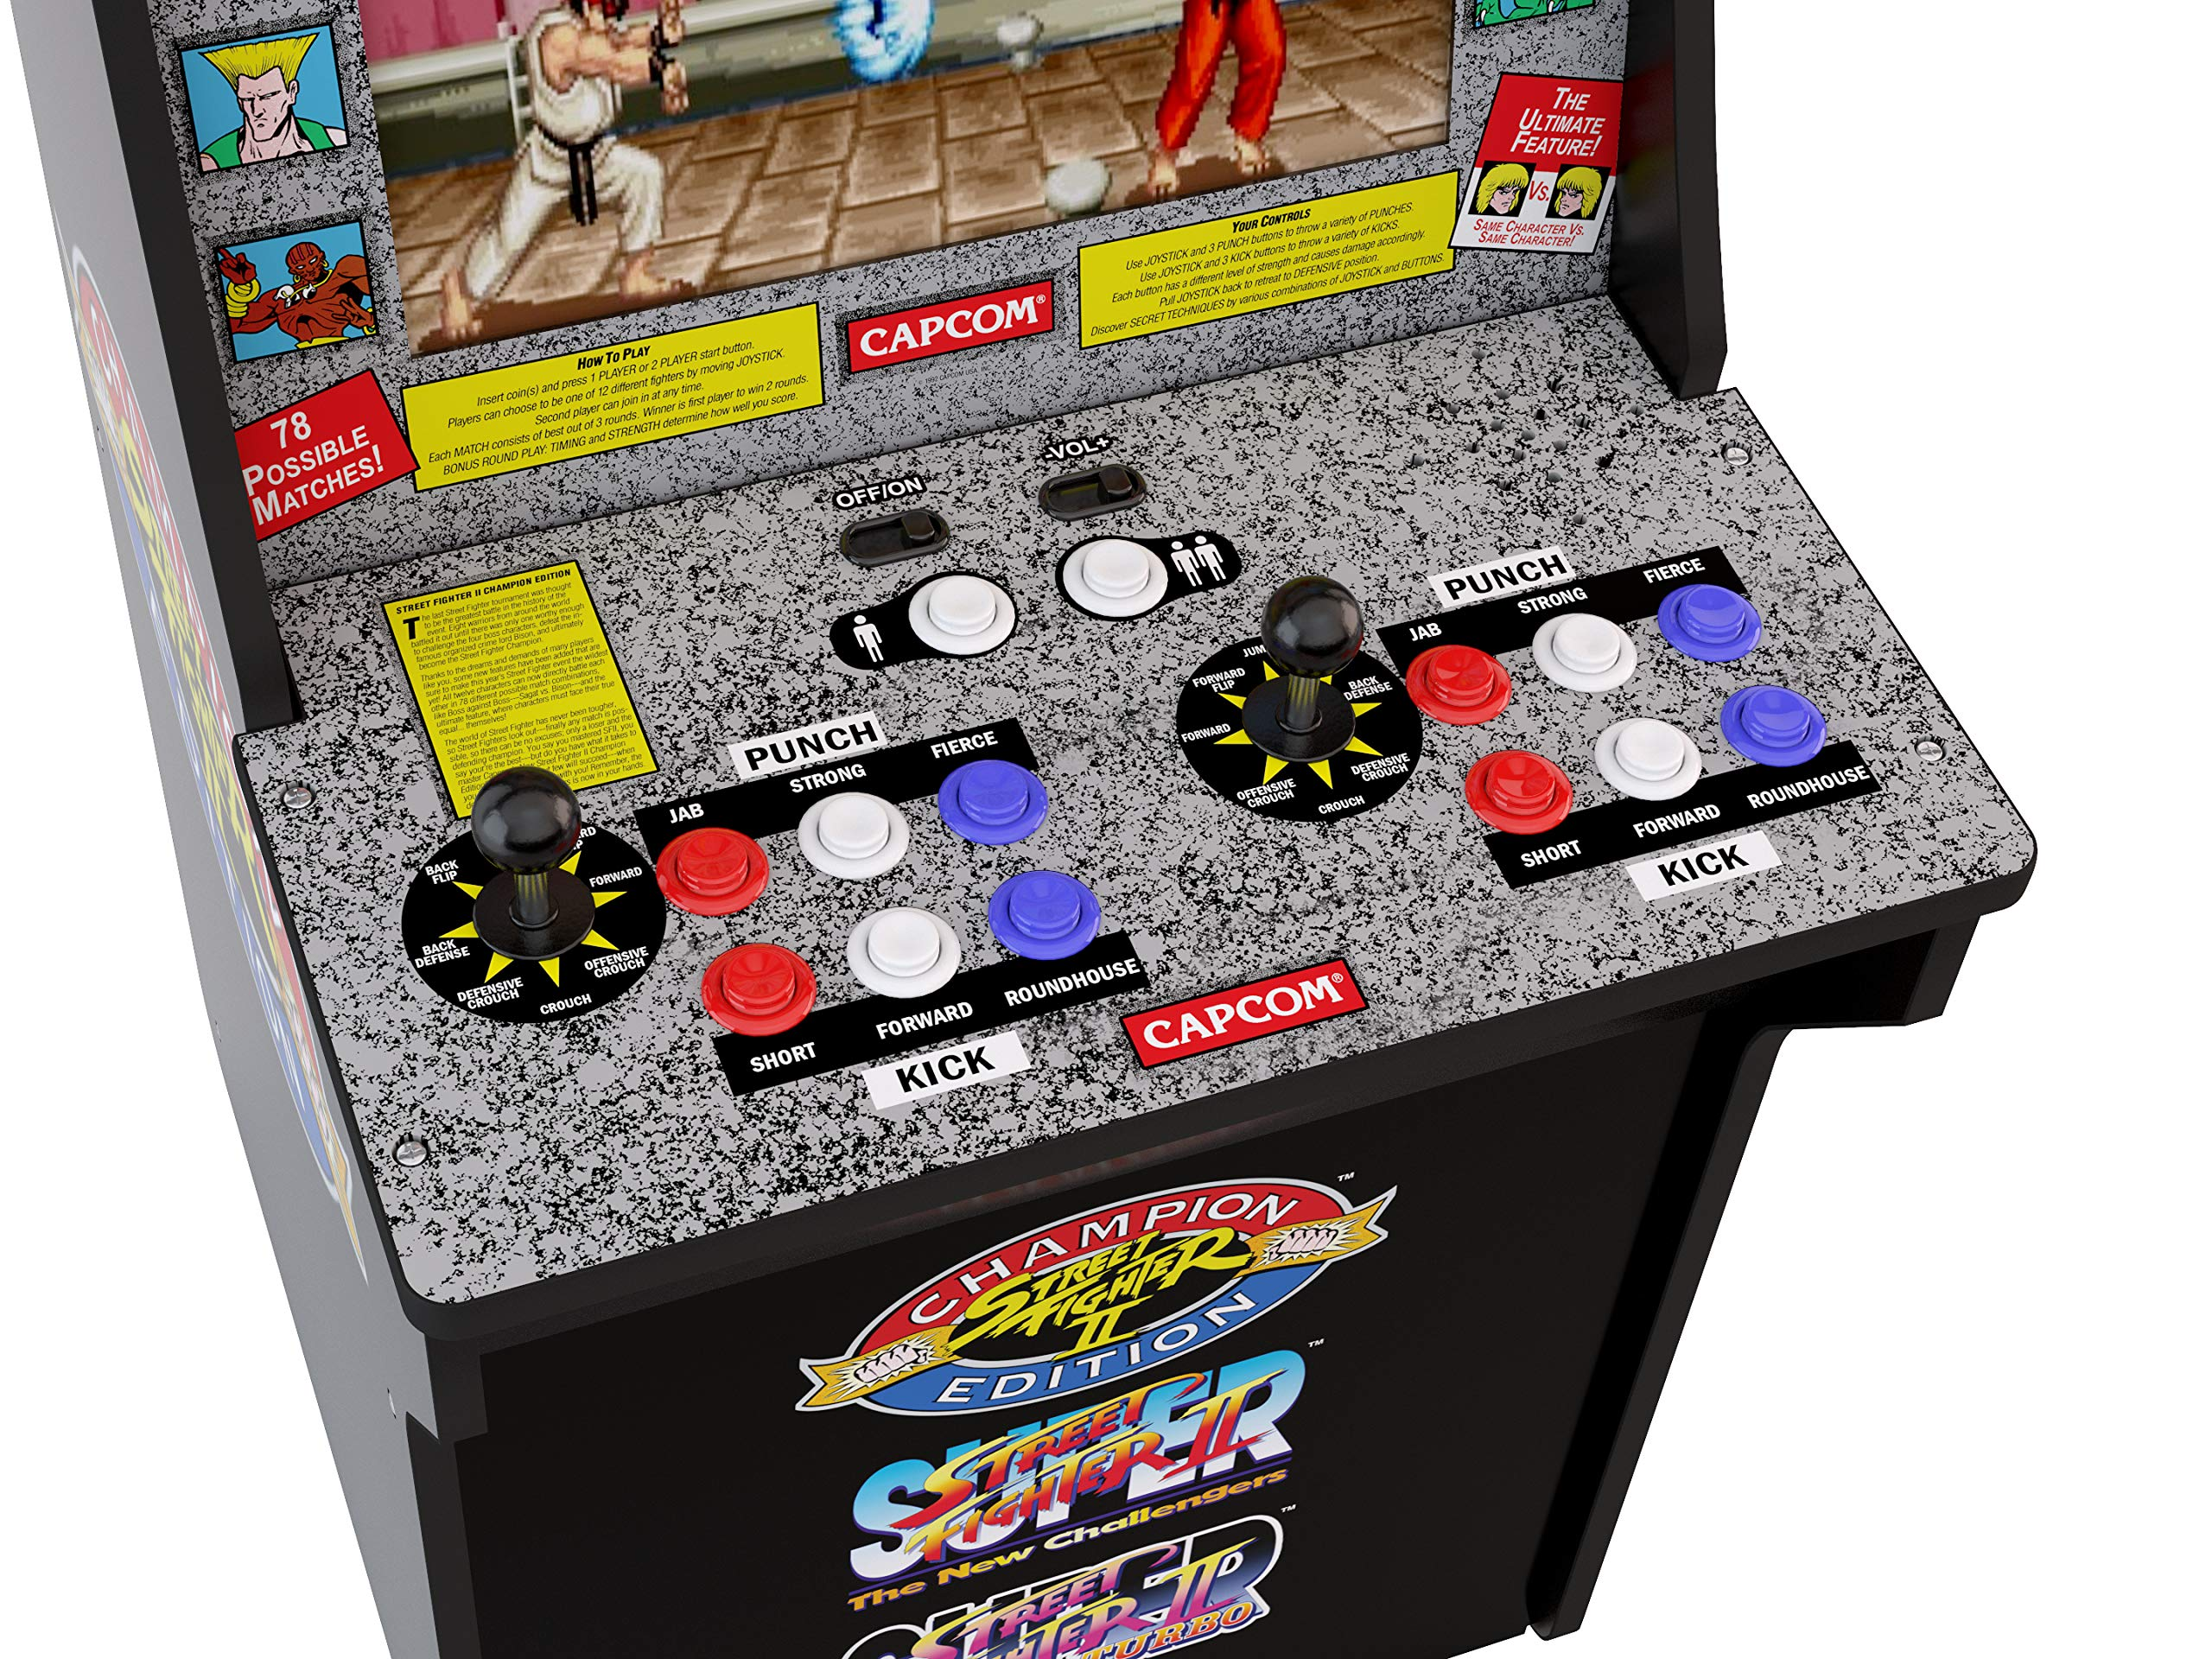 Arcade1Up Street Fighter - Classic 3-in-1 Home Arcade, 4Ft - Not Machine Specific by Arcade1Up (Image #3)